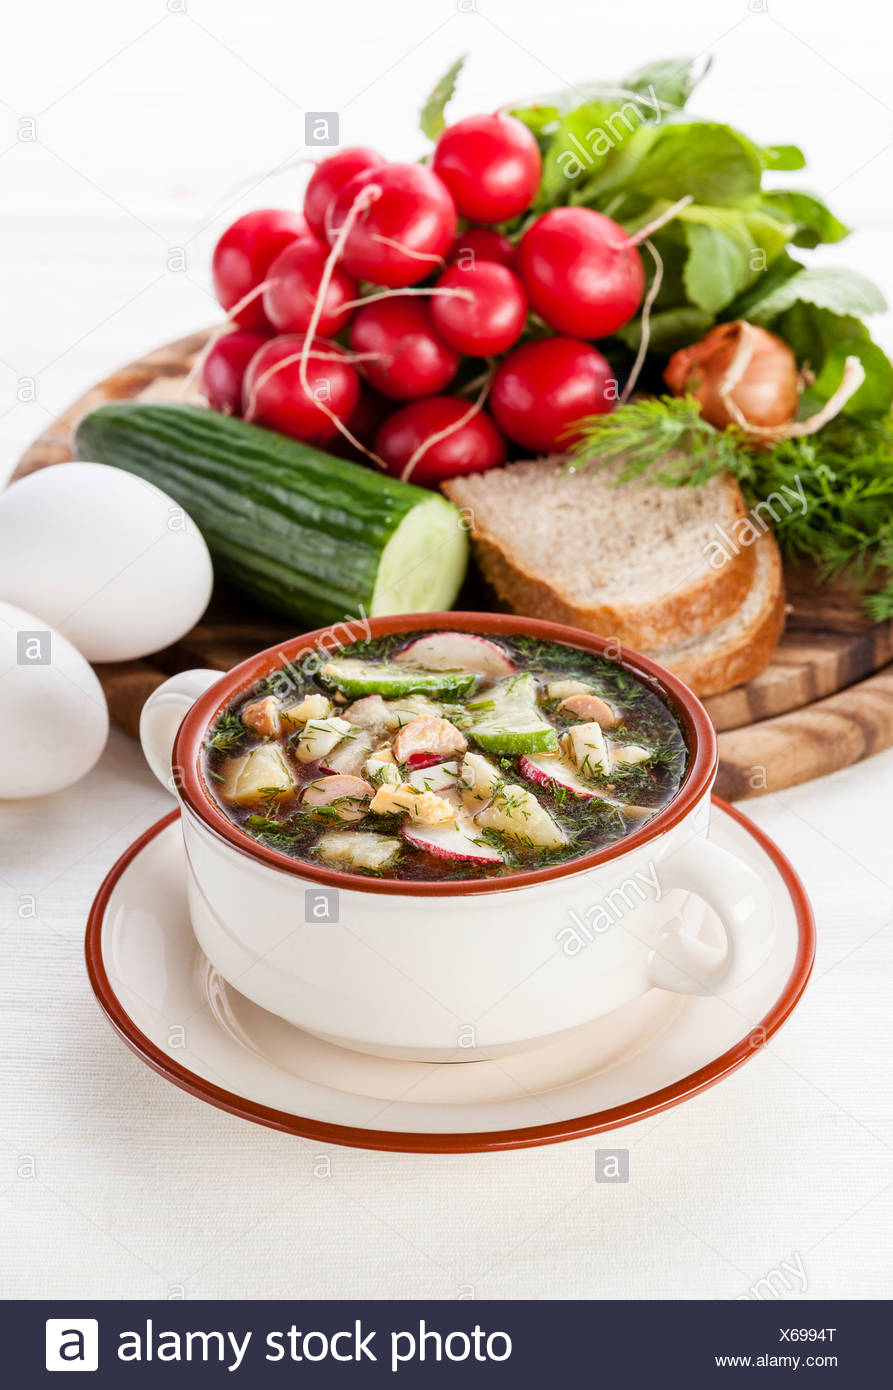 Okroshka - Russian kvass Cold Soup with Vegetables - Stock Image